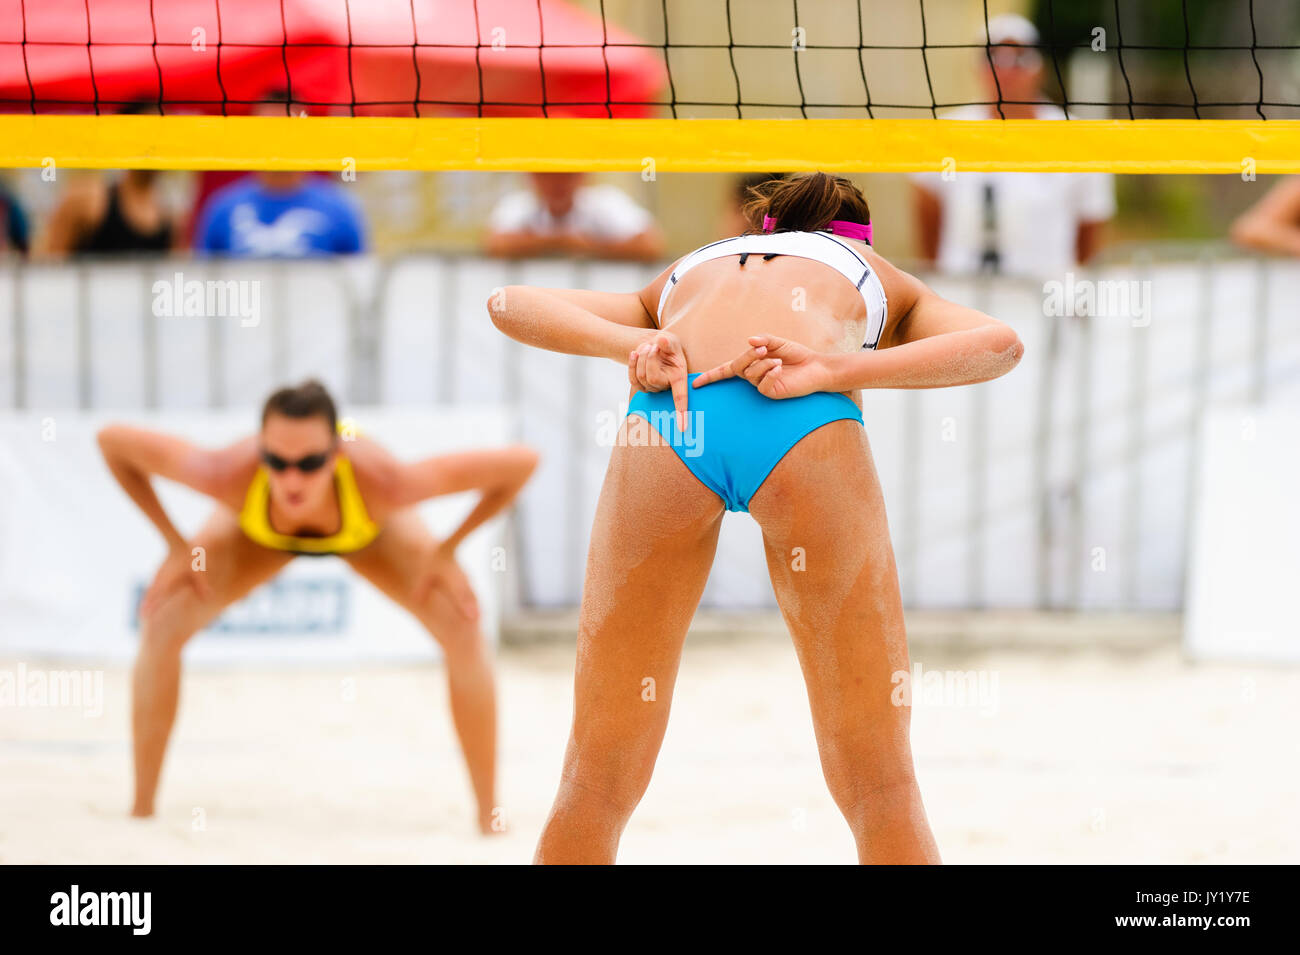 Volleyball player is a female beach volleyball beach player giving hand signals to her team mate while she faces - Stock Image